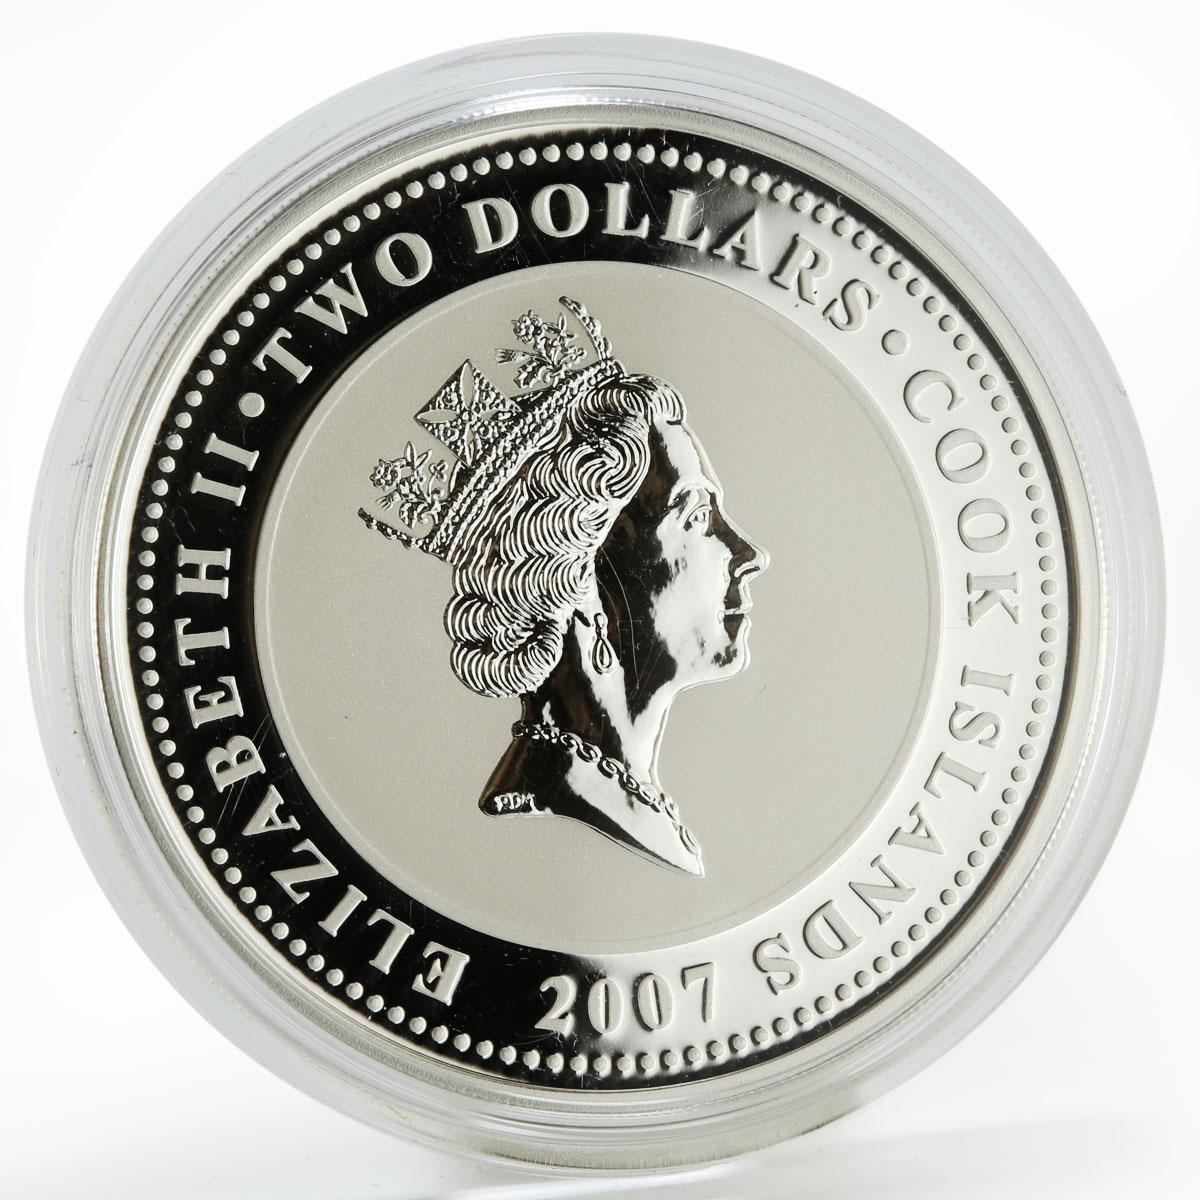 Cook Islands 2 dollars Adventures of Sherlock Holmes colored silver coin 2007